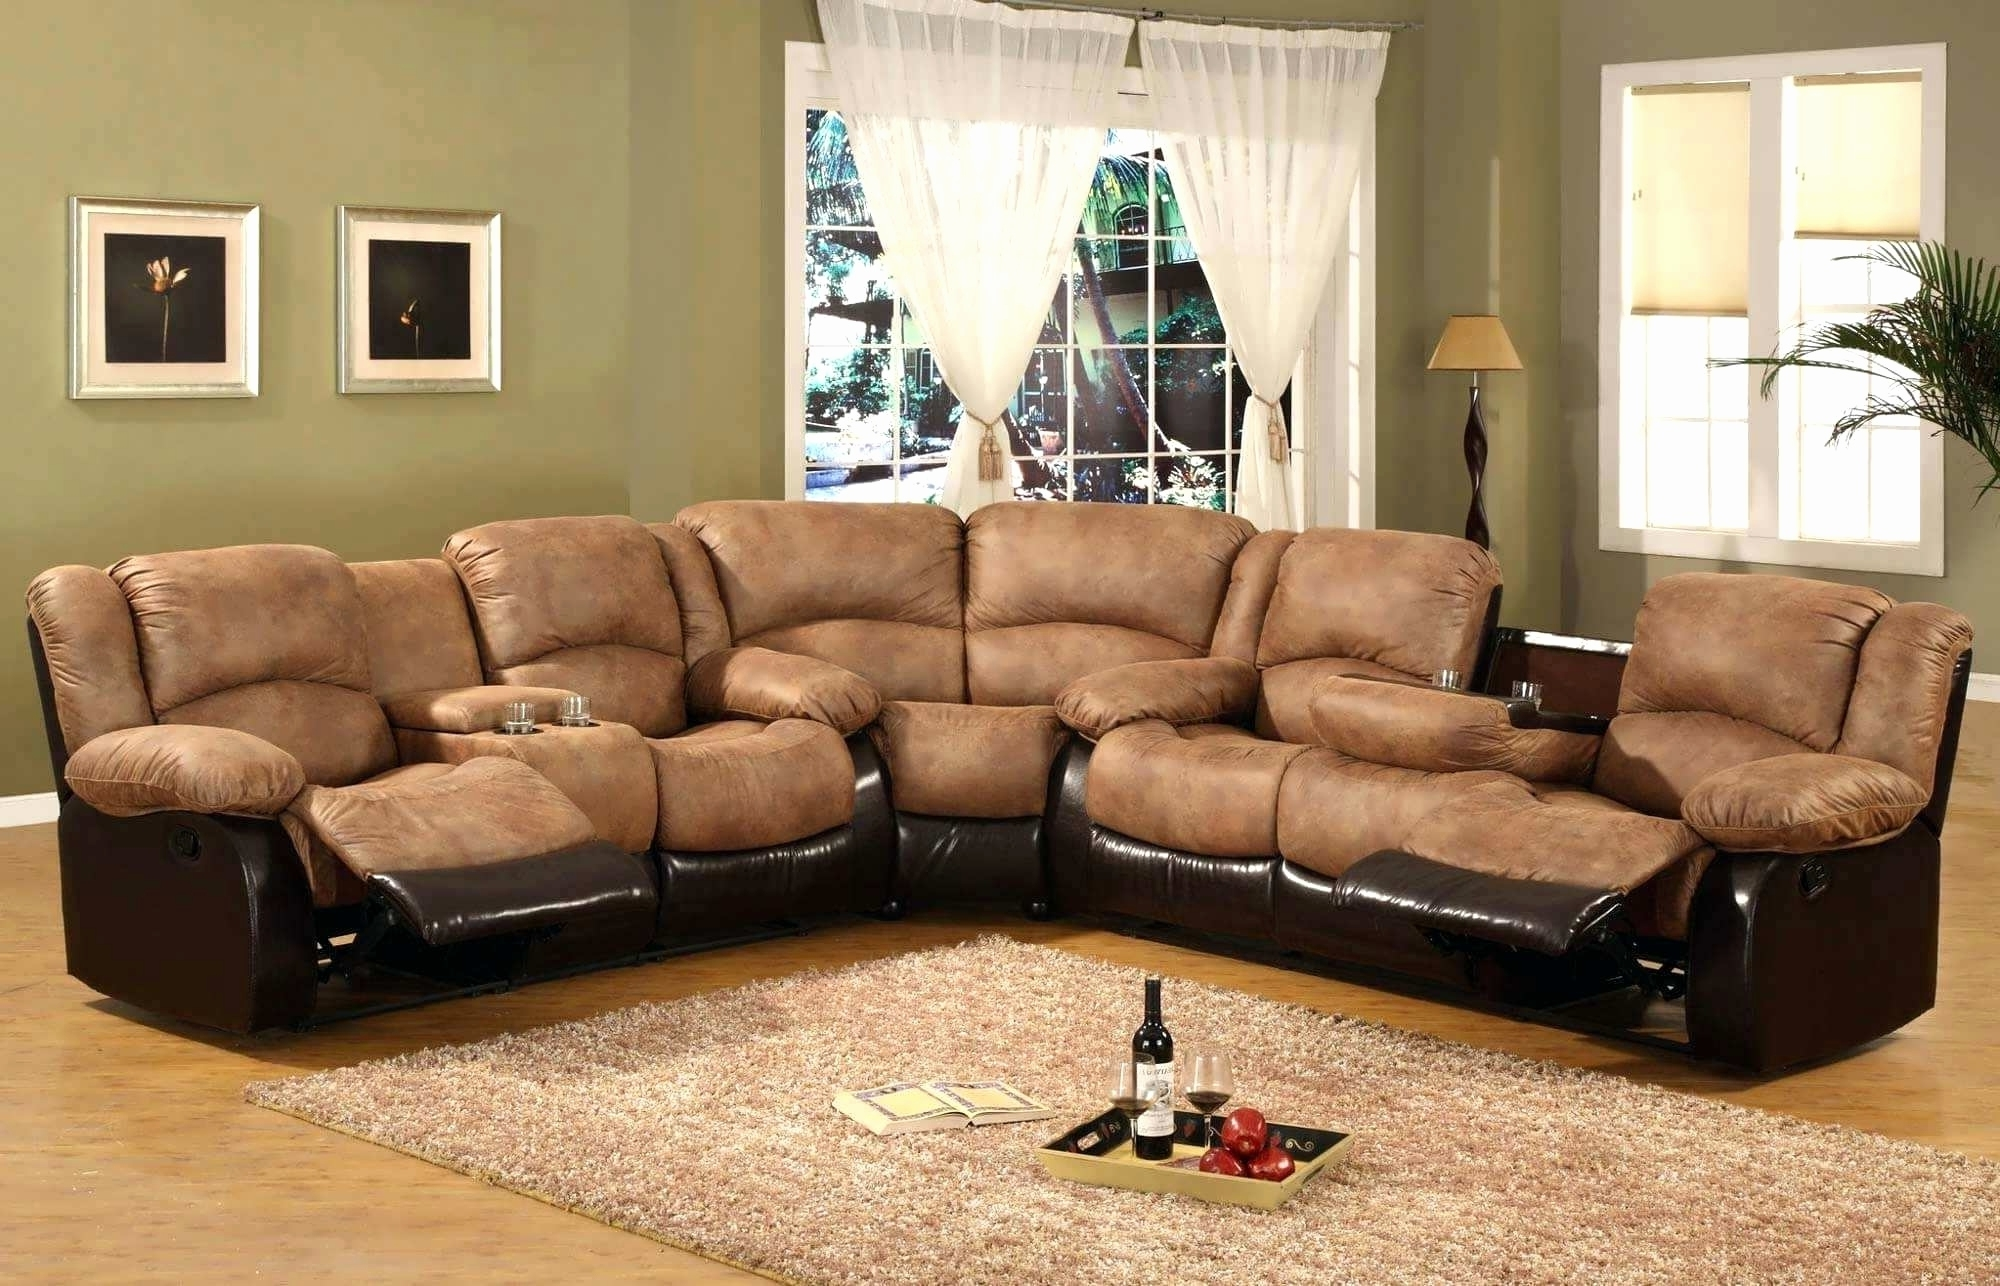 Sectional Sofas With Recliners Leather With Regard To 2018 Lovely Microfiber Sectional Sofa With Chaise And Recliner  (View 18 of 20)